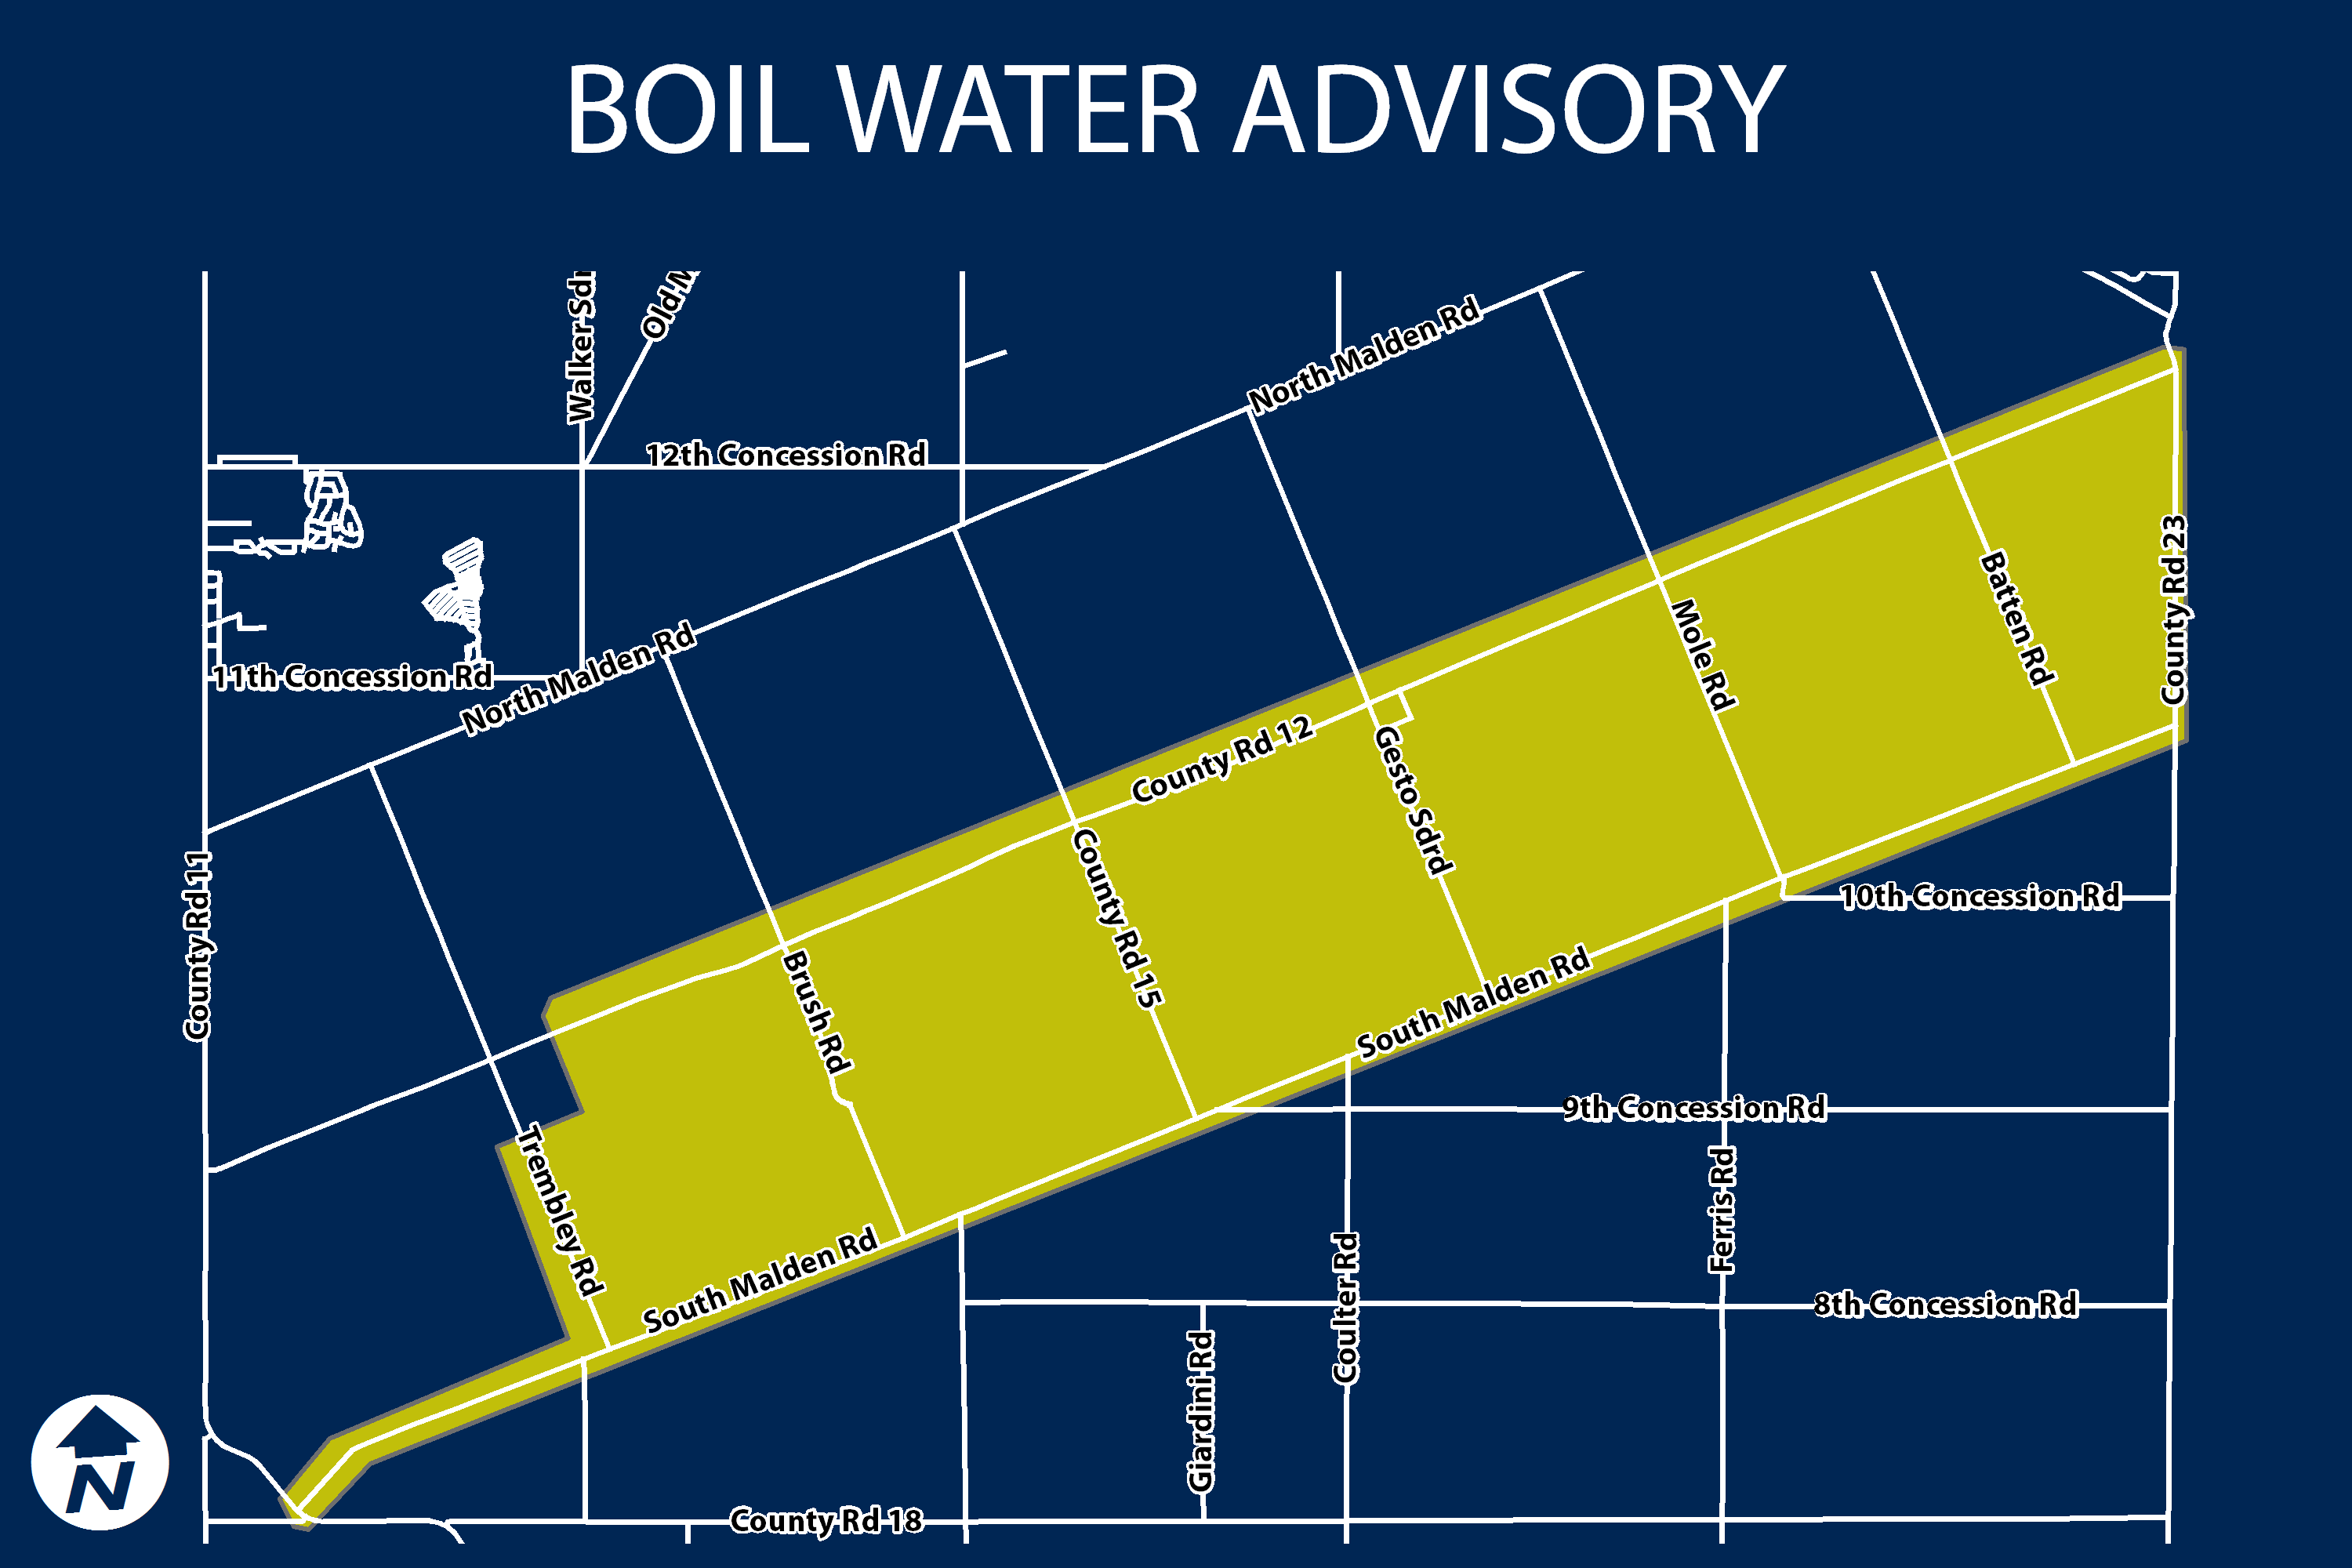 AM800-News-Essex-Boil-Water-Advisory-Lifted.png